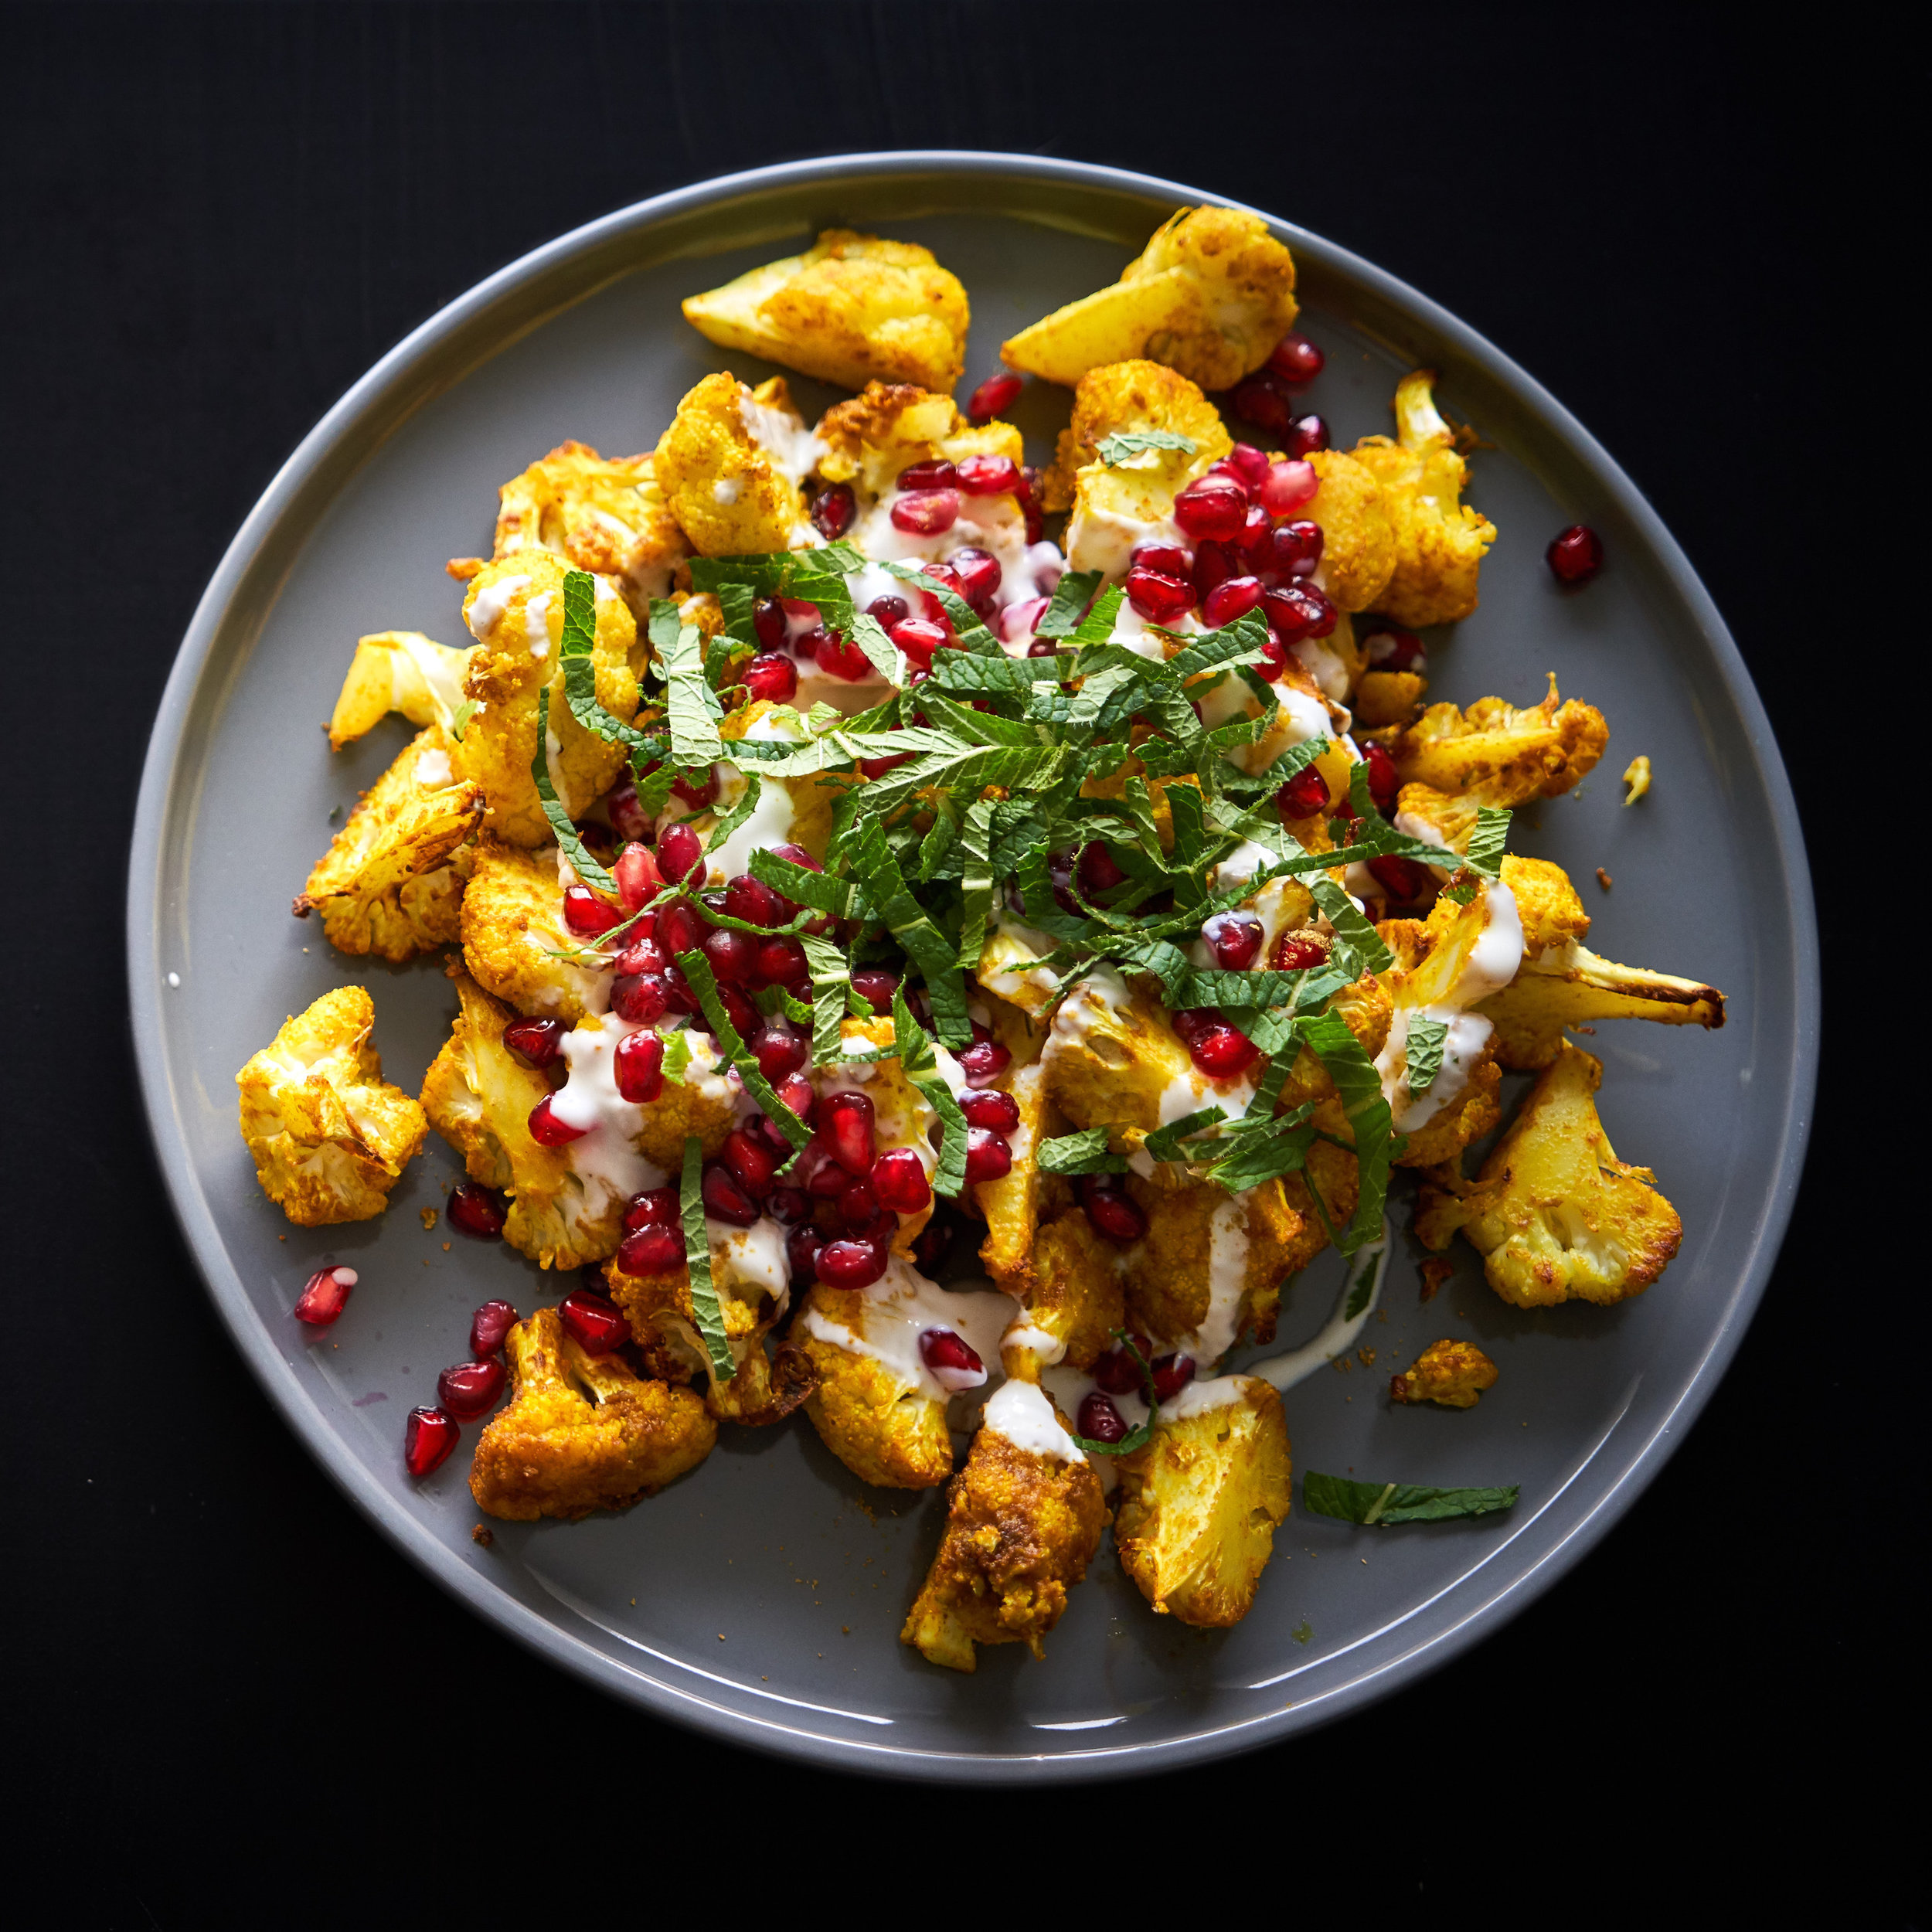 Roasted Cauliflower with Turmeric, Pomegranate and Mint | In Carina's Kitchen